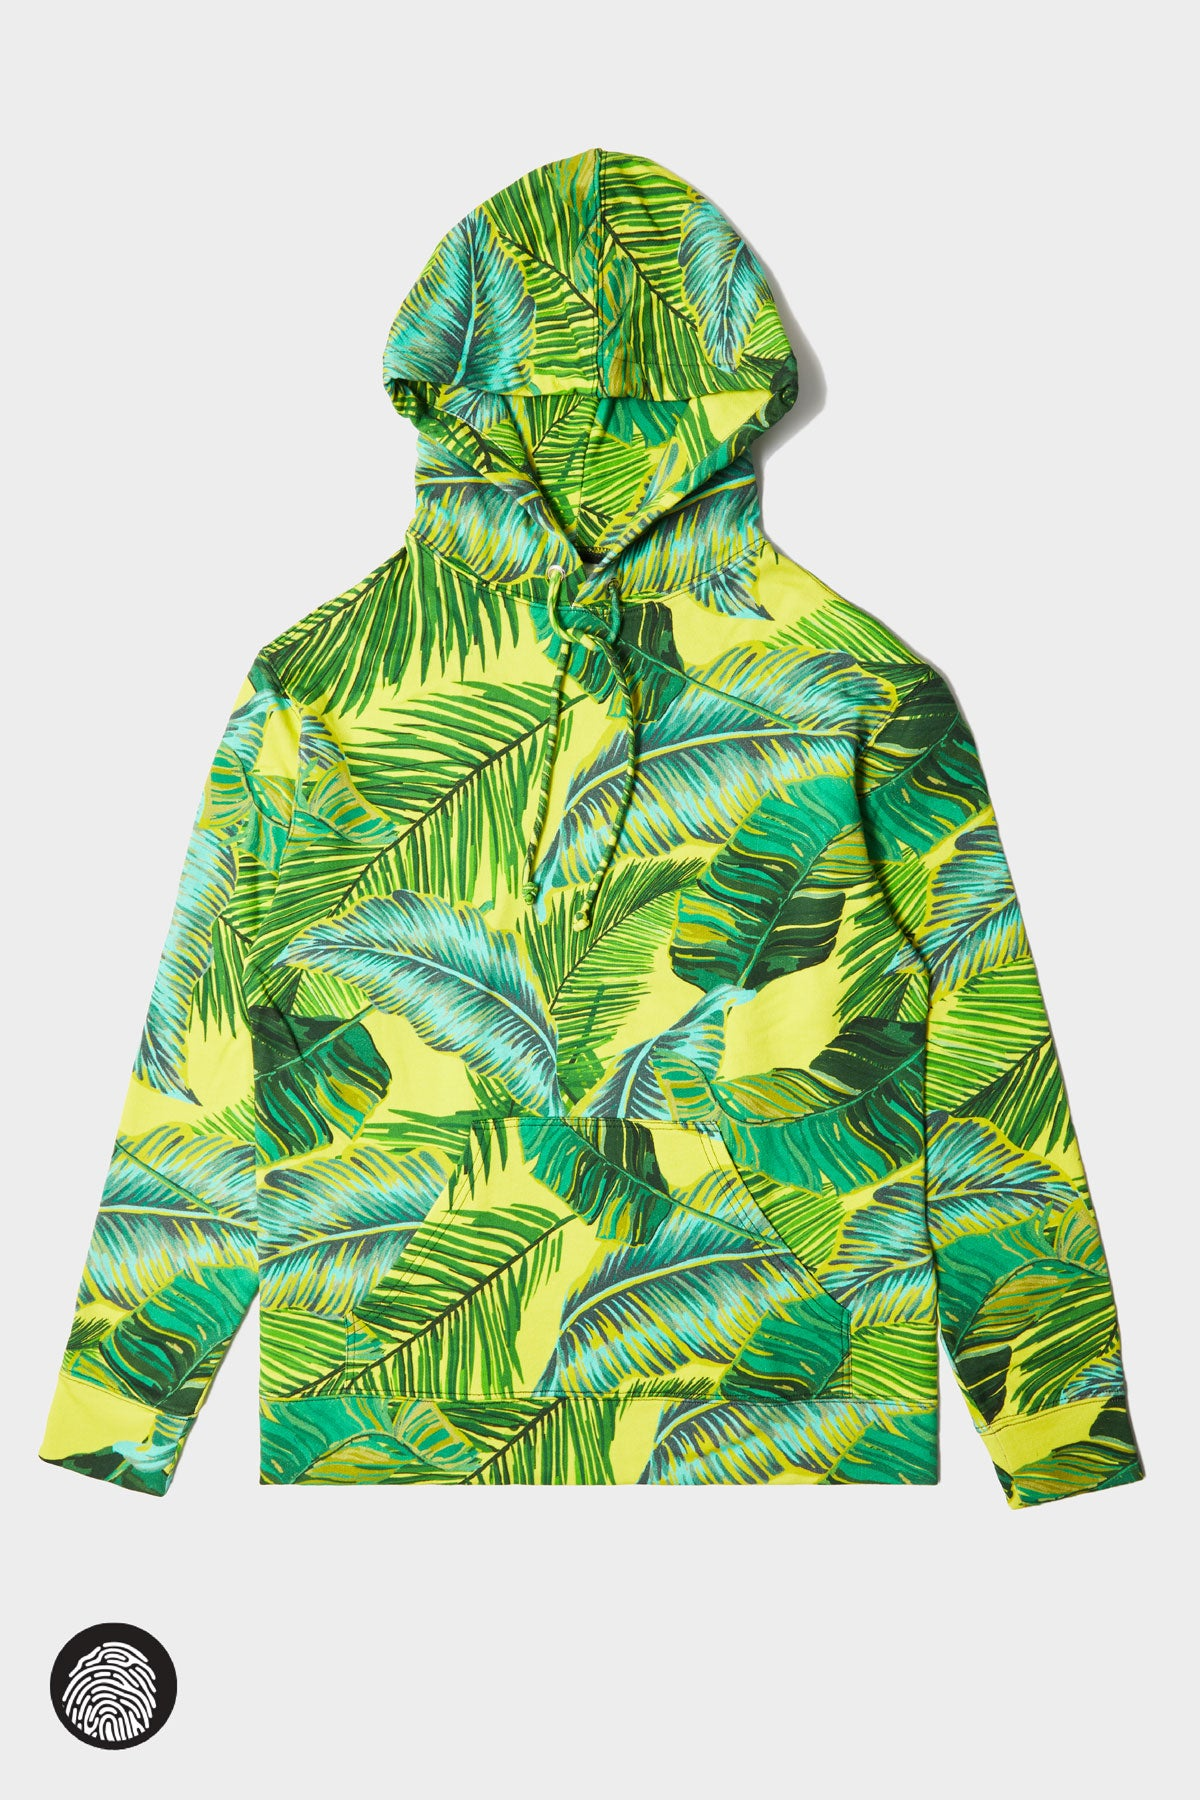 KOA HOODIE / JUNGLE YELLOW  | Jungle Gurl